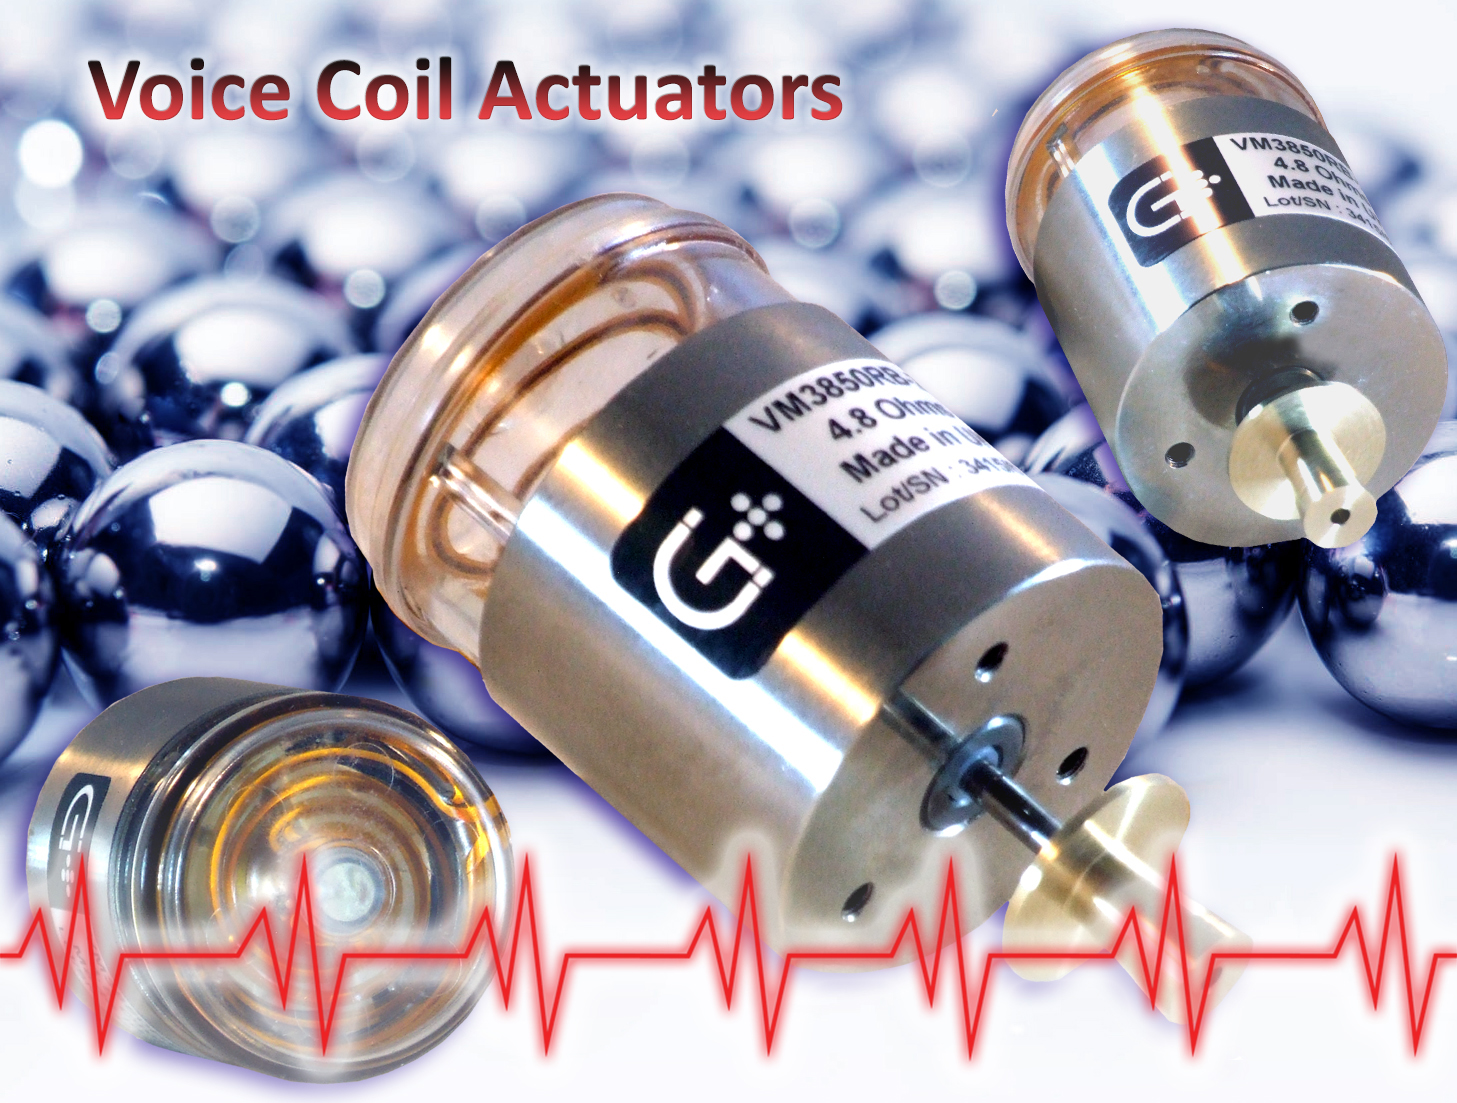 Geeplus voice coil actuators in Medical